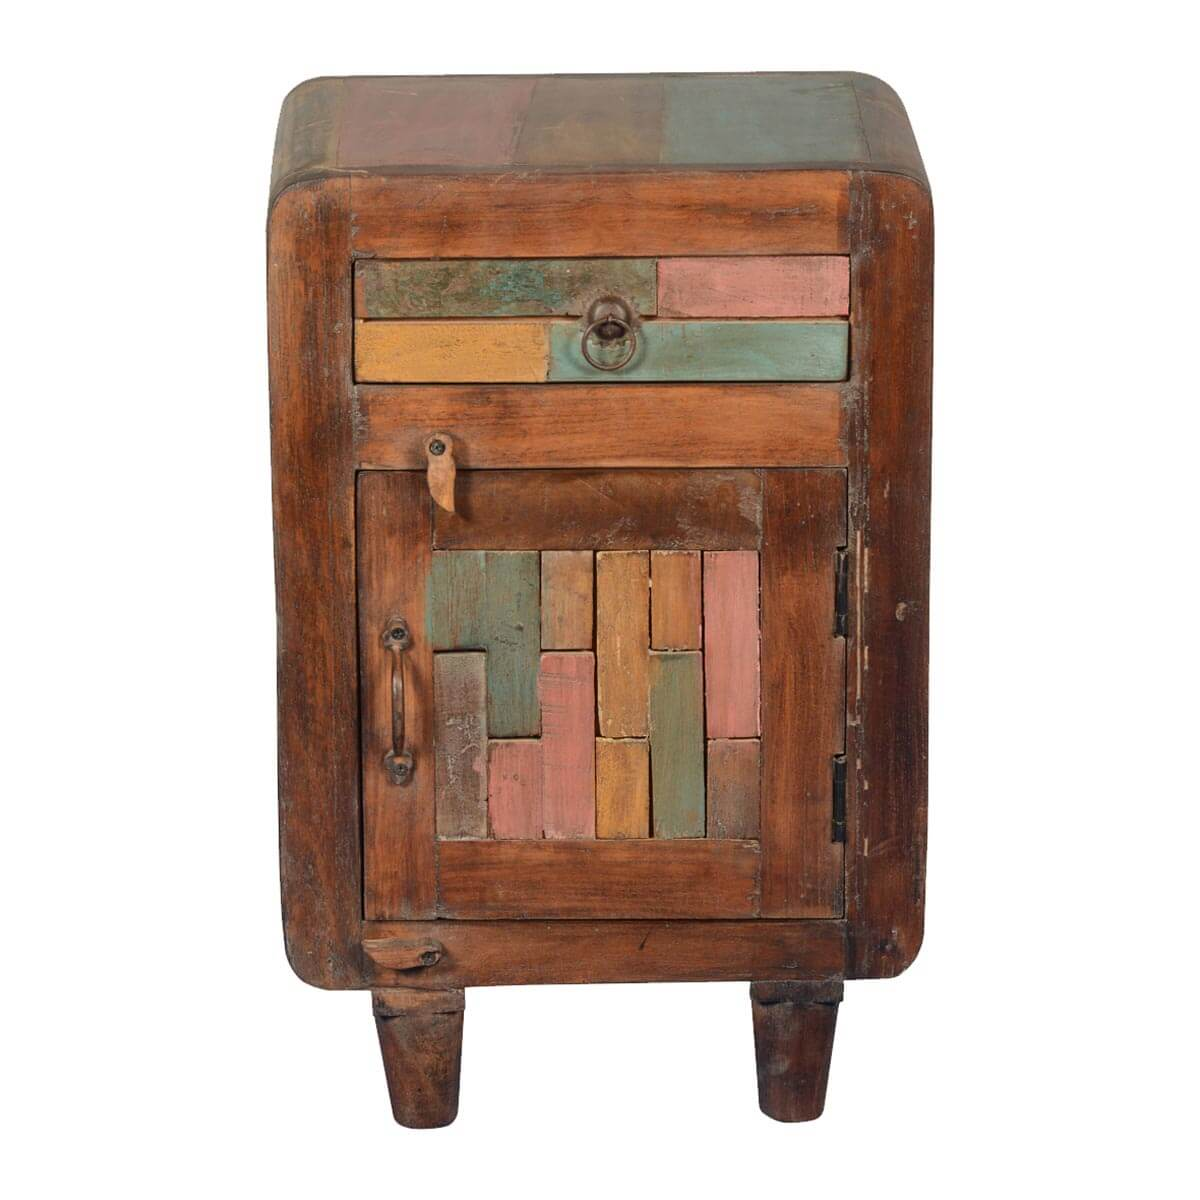 Rainbow Patches Reclaimed Wood Nightstand End Table Cabinet - Patches Reclaimed Wood Nightstand End Table Cabinet